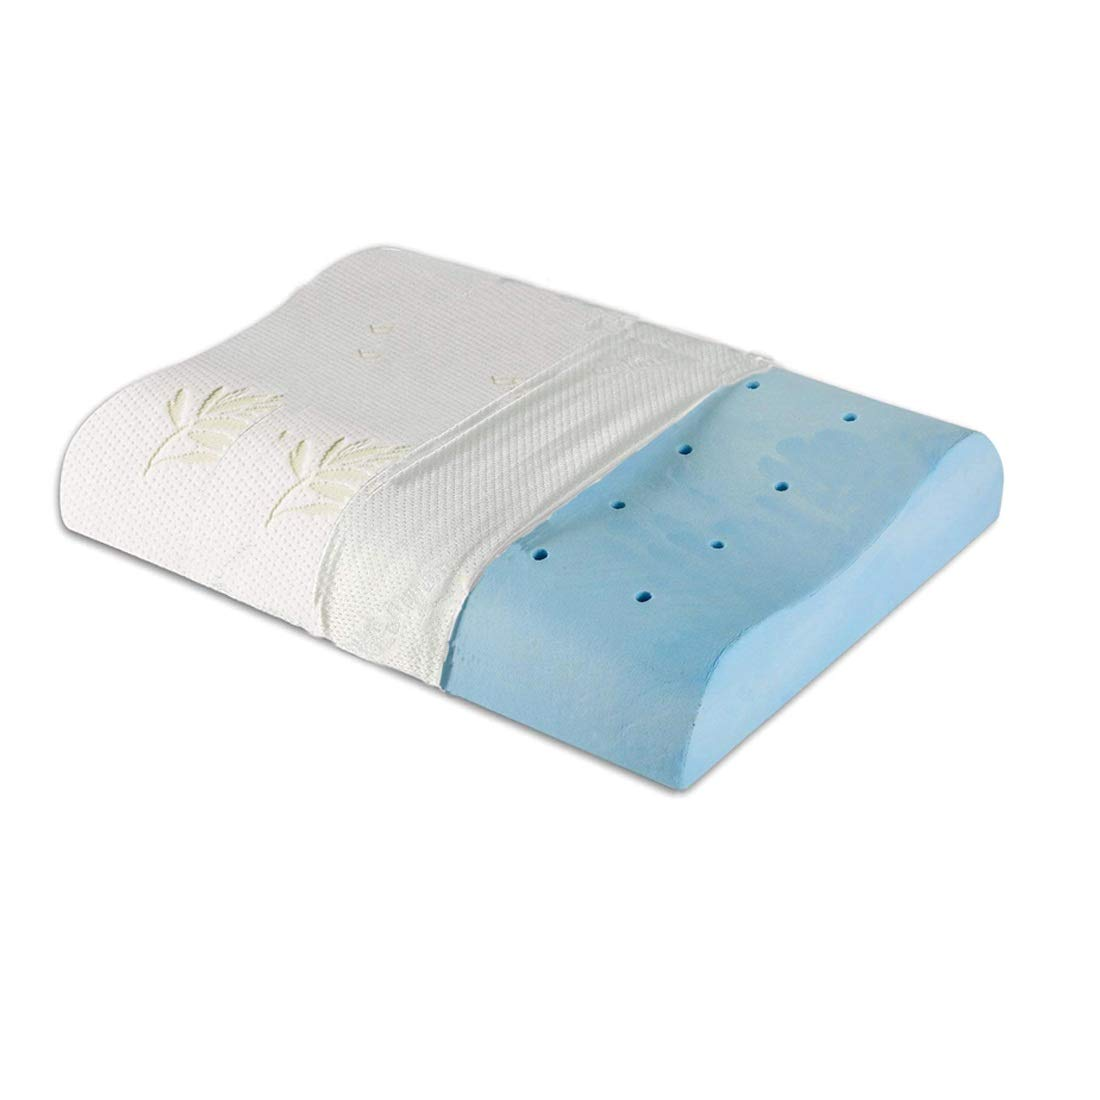 The White Willow Cervical Pillow